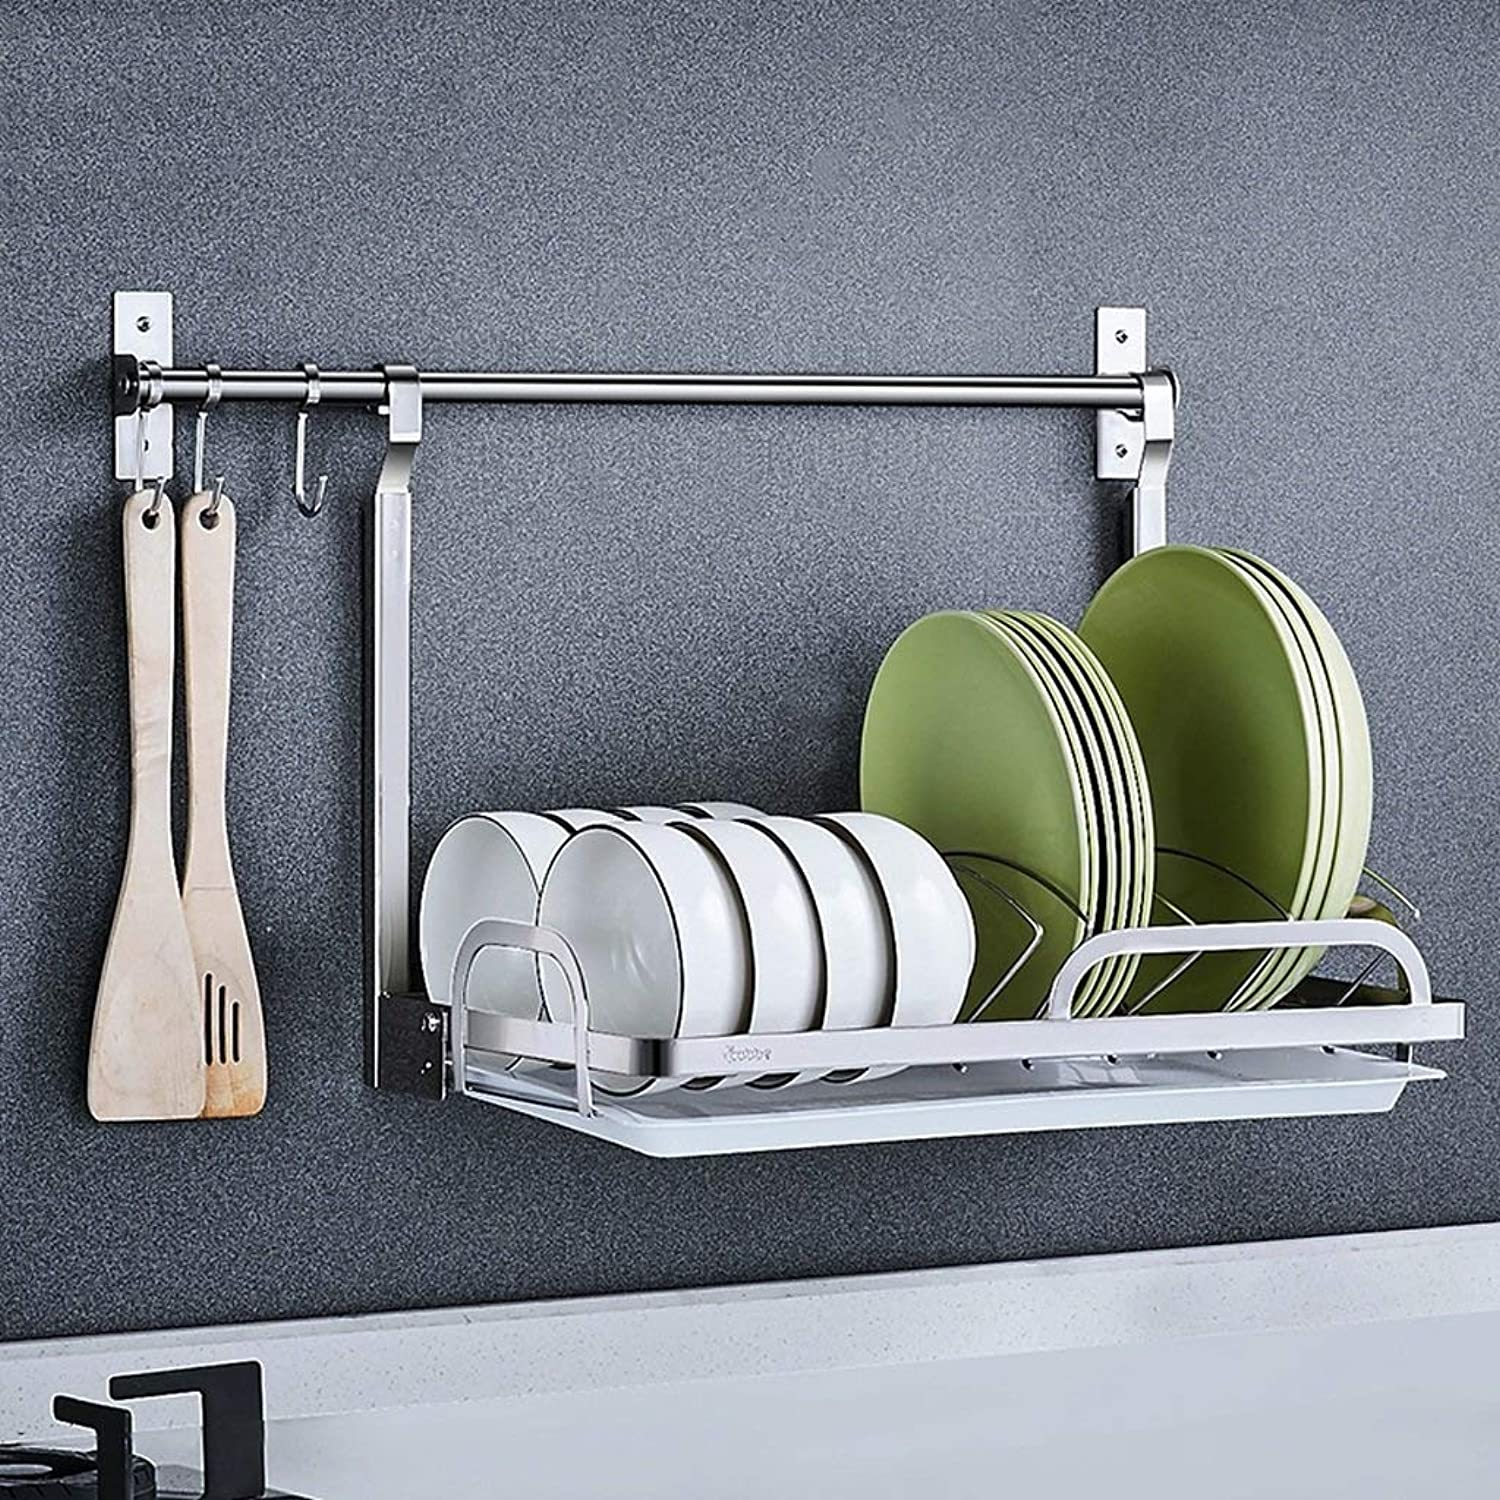 GX Stainless Steel Wall-Mounted Kitchen Shelf,Wall Storage Seasoning Drain Dish Rack(with Hook)